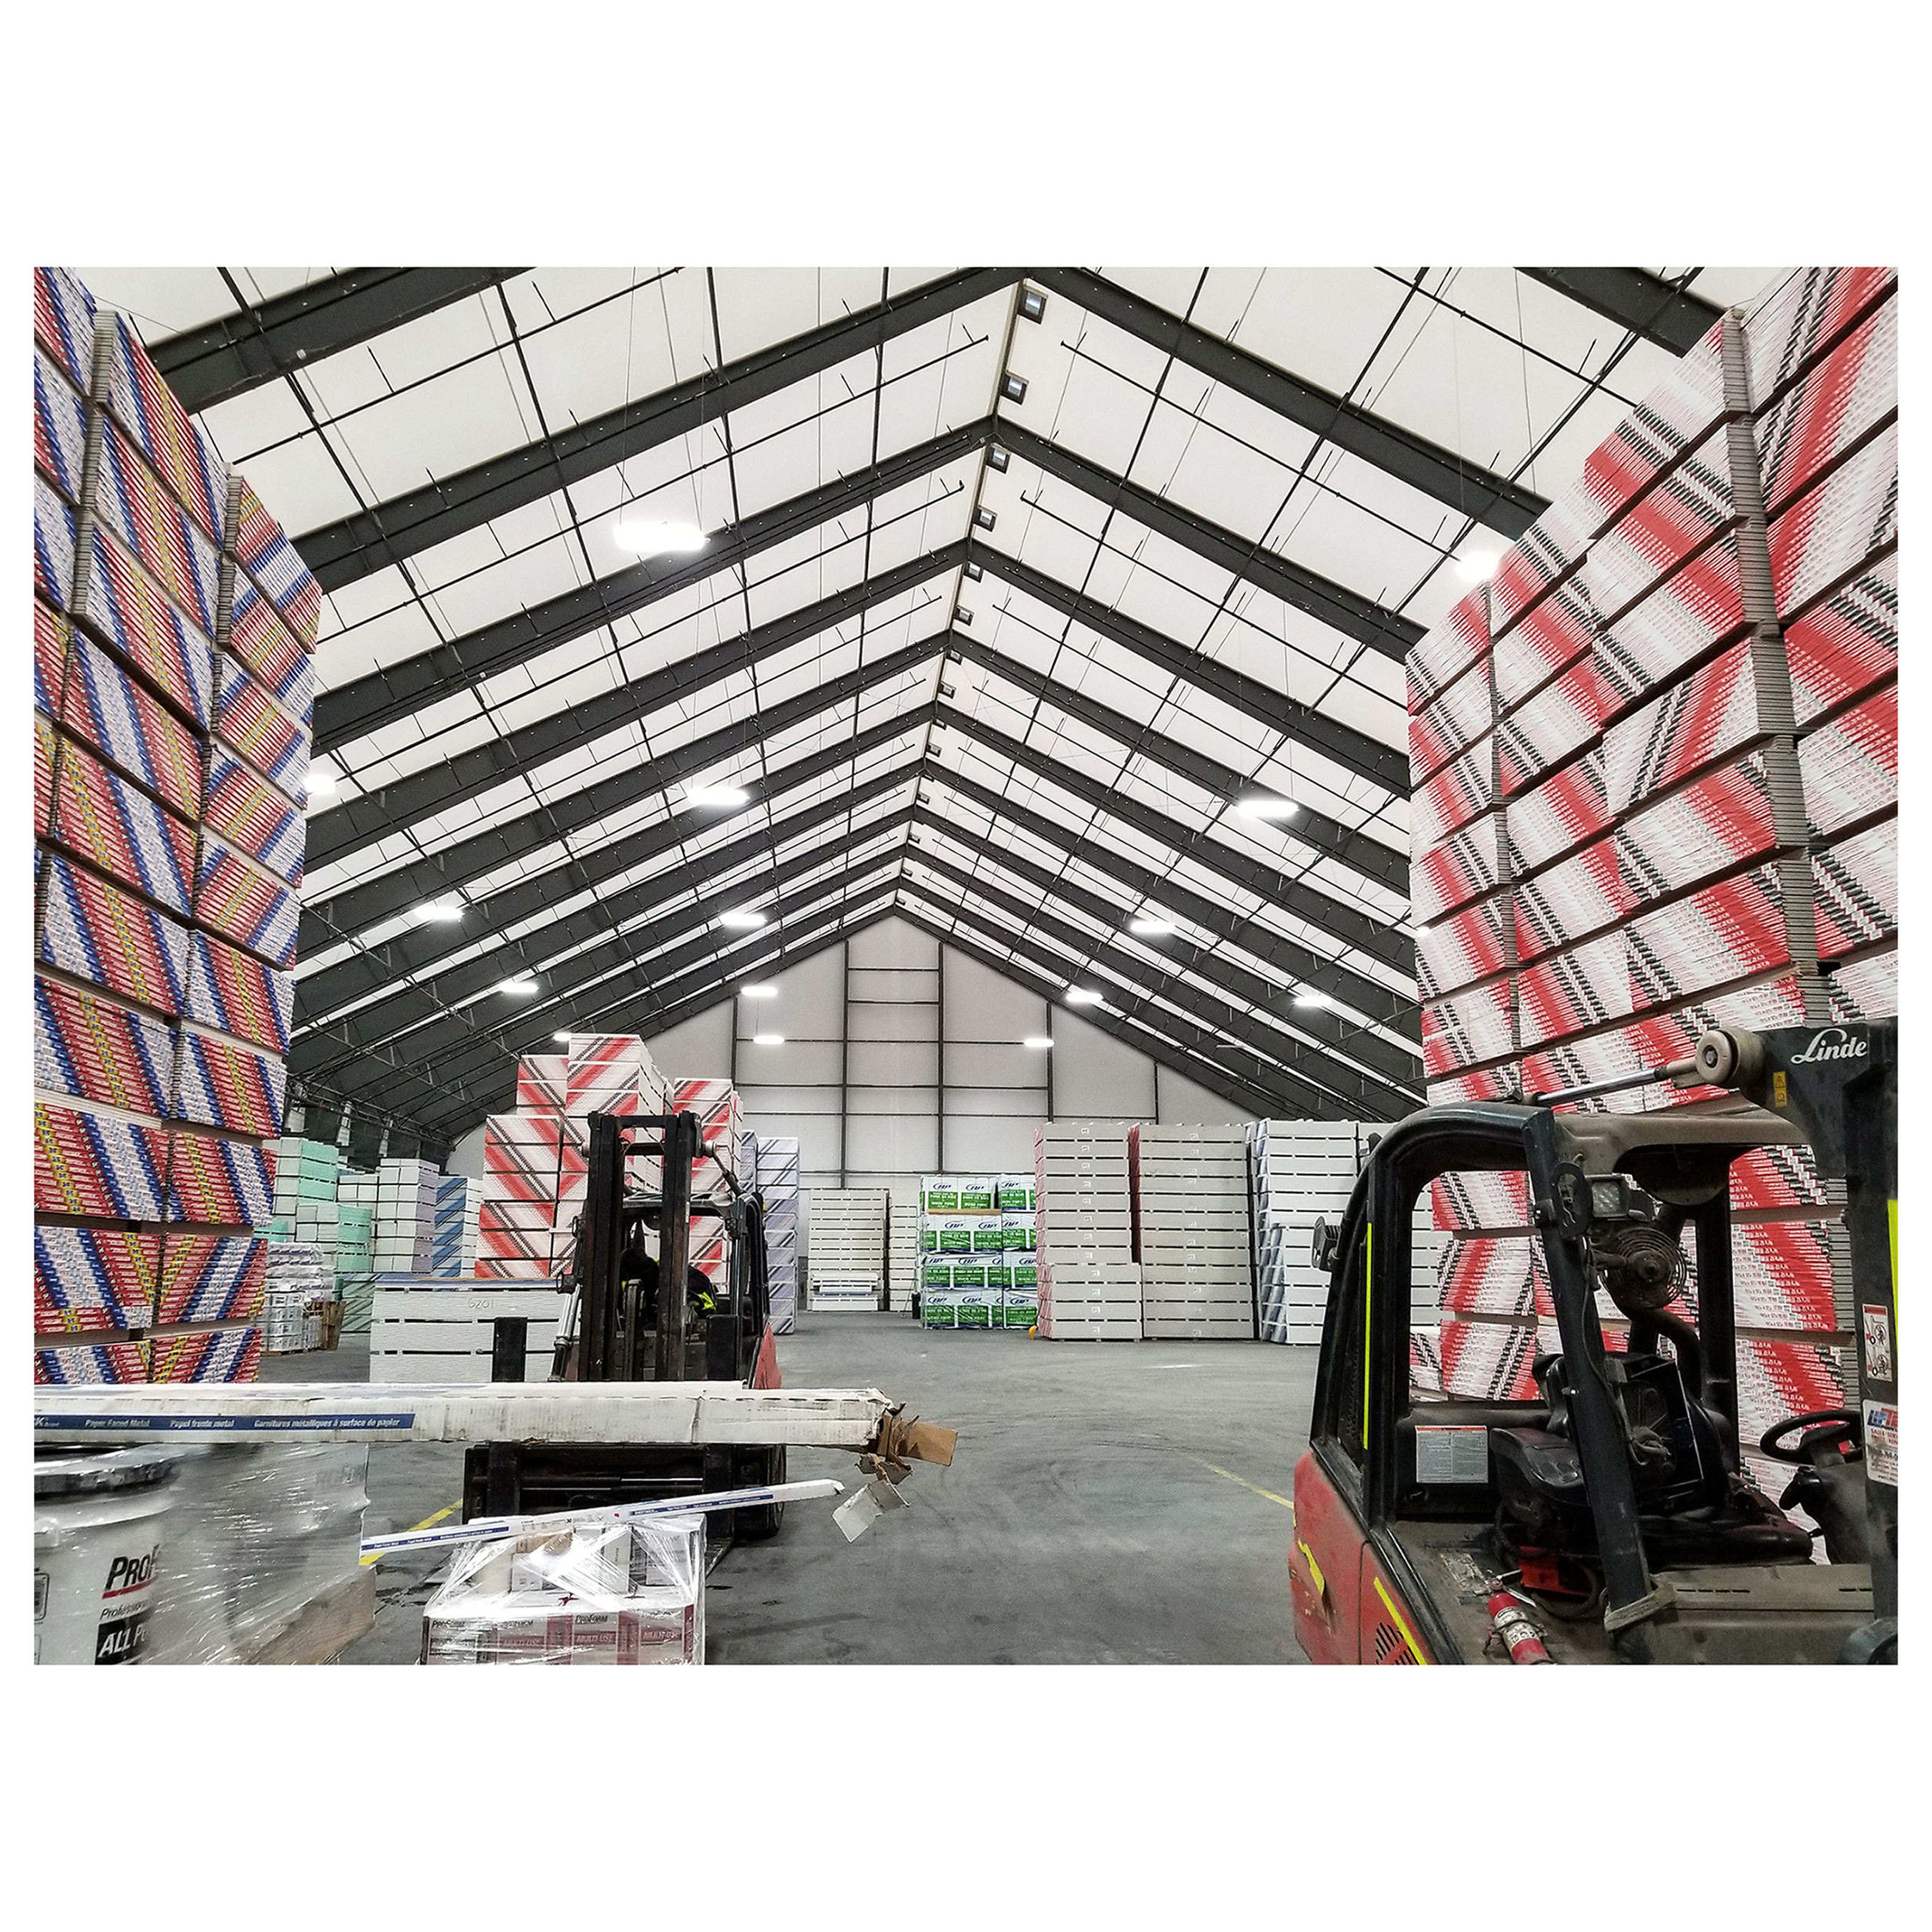 Warehouse & Manufacturing Fabric Building Sturdy Steel Frame For Durability And Efficiency